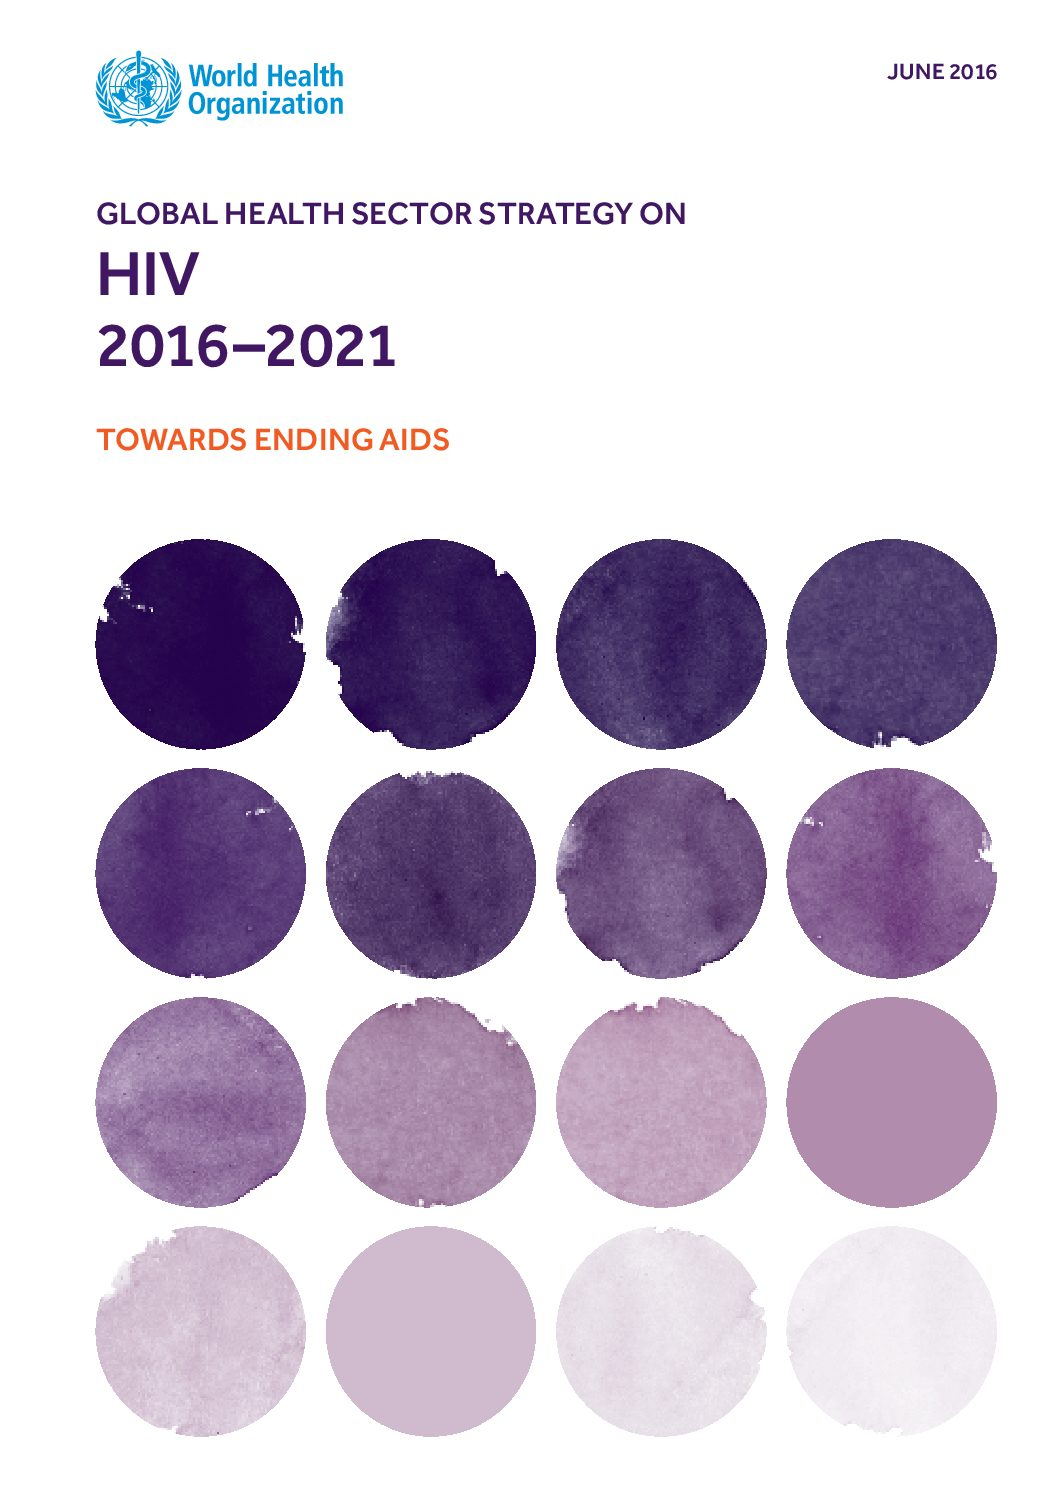 Global health sector strategy on HIV 2016–2021 towards ending AIDS.